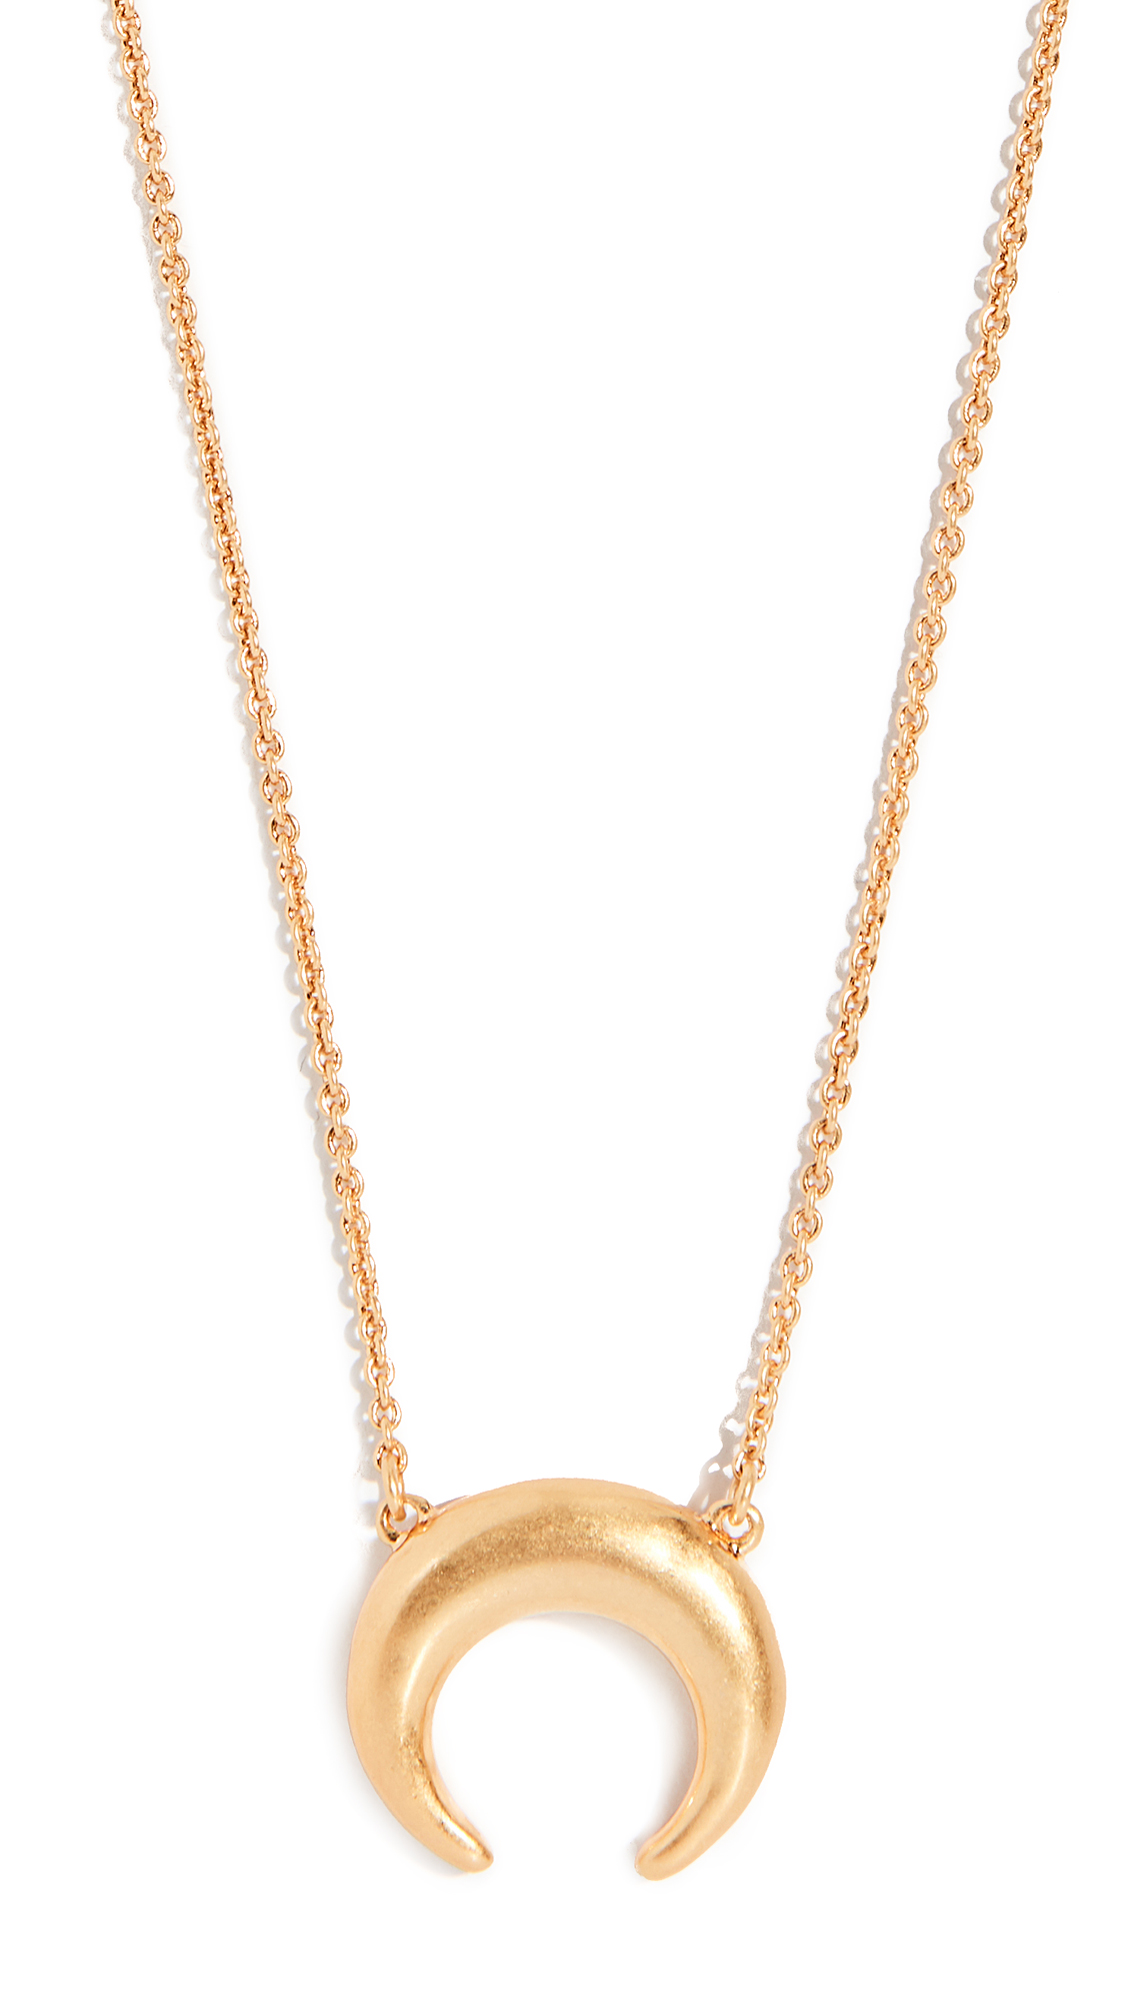 Madewell Crescent Pendant Necklace - Yellow Gold